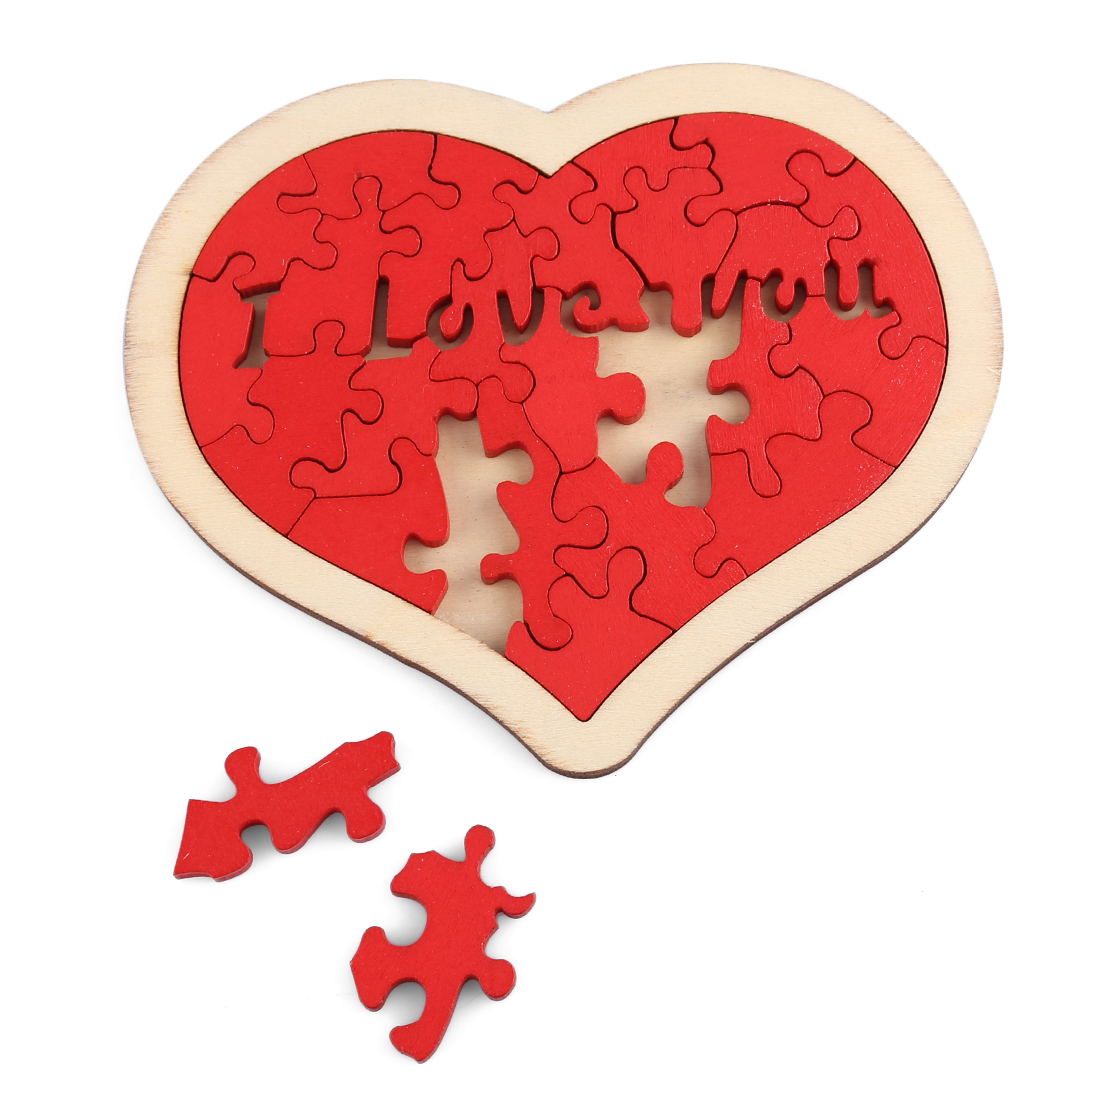 New Arrival Love Heart Pattern Jigsaw Puzzle Set Children Development And Education Toys Jigsaw Puzzles For Children Adults